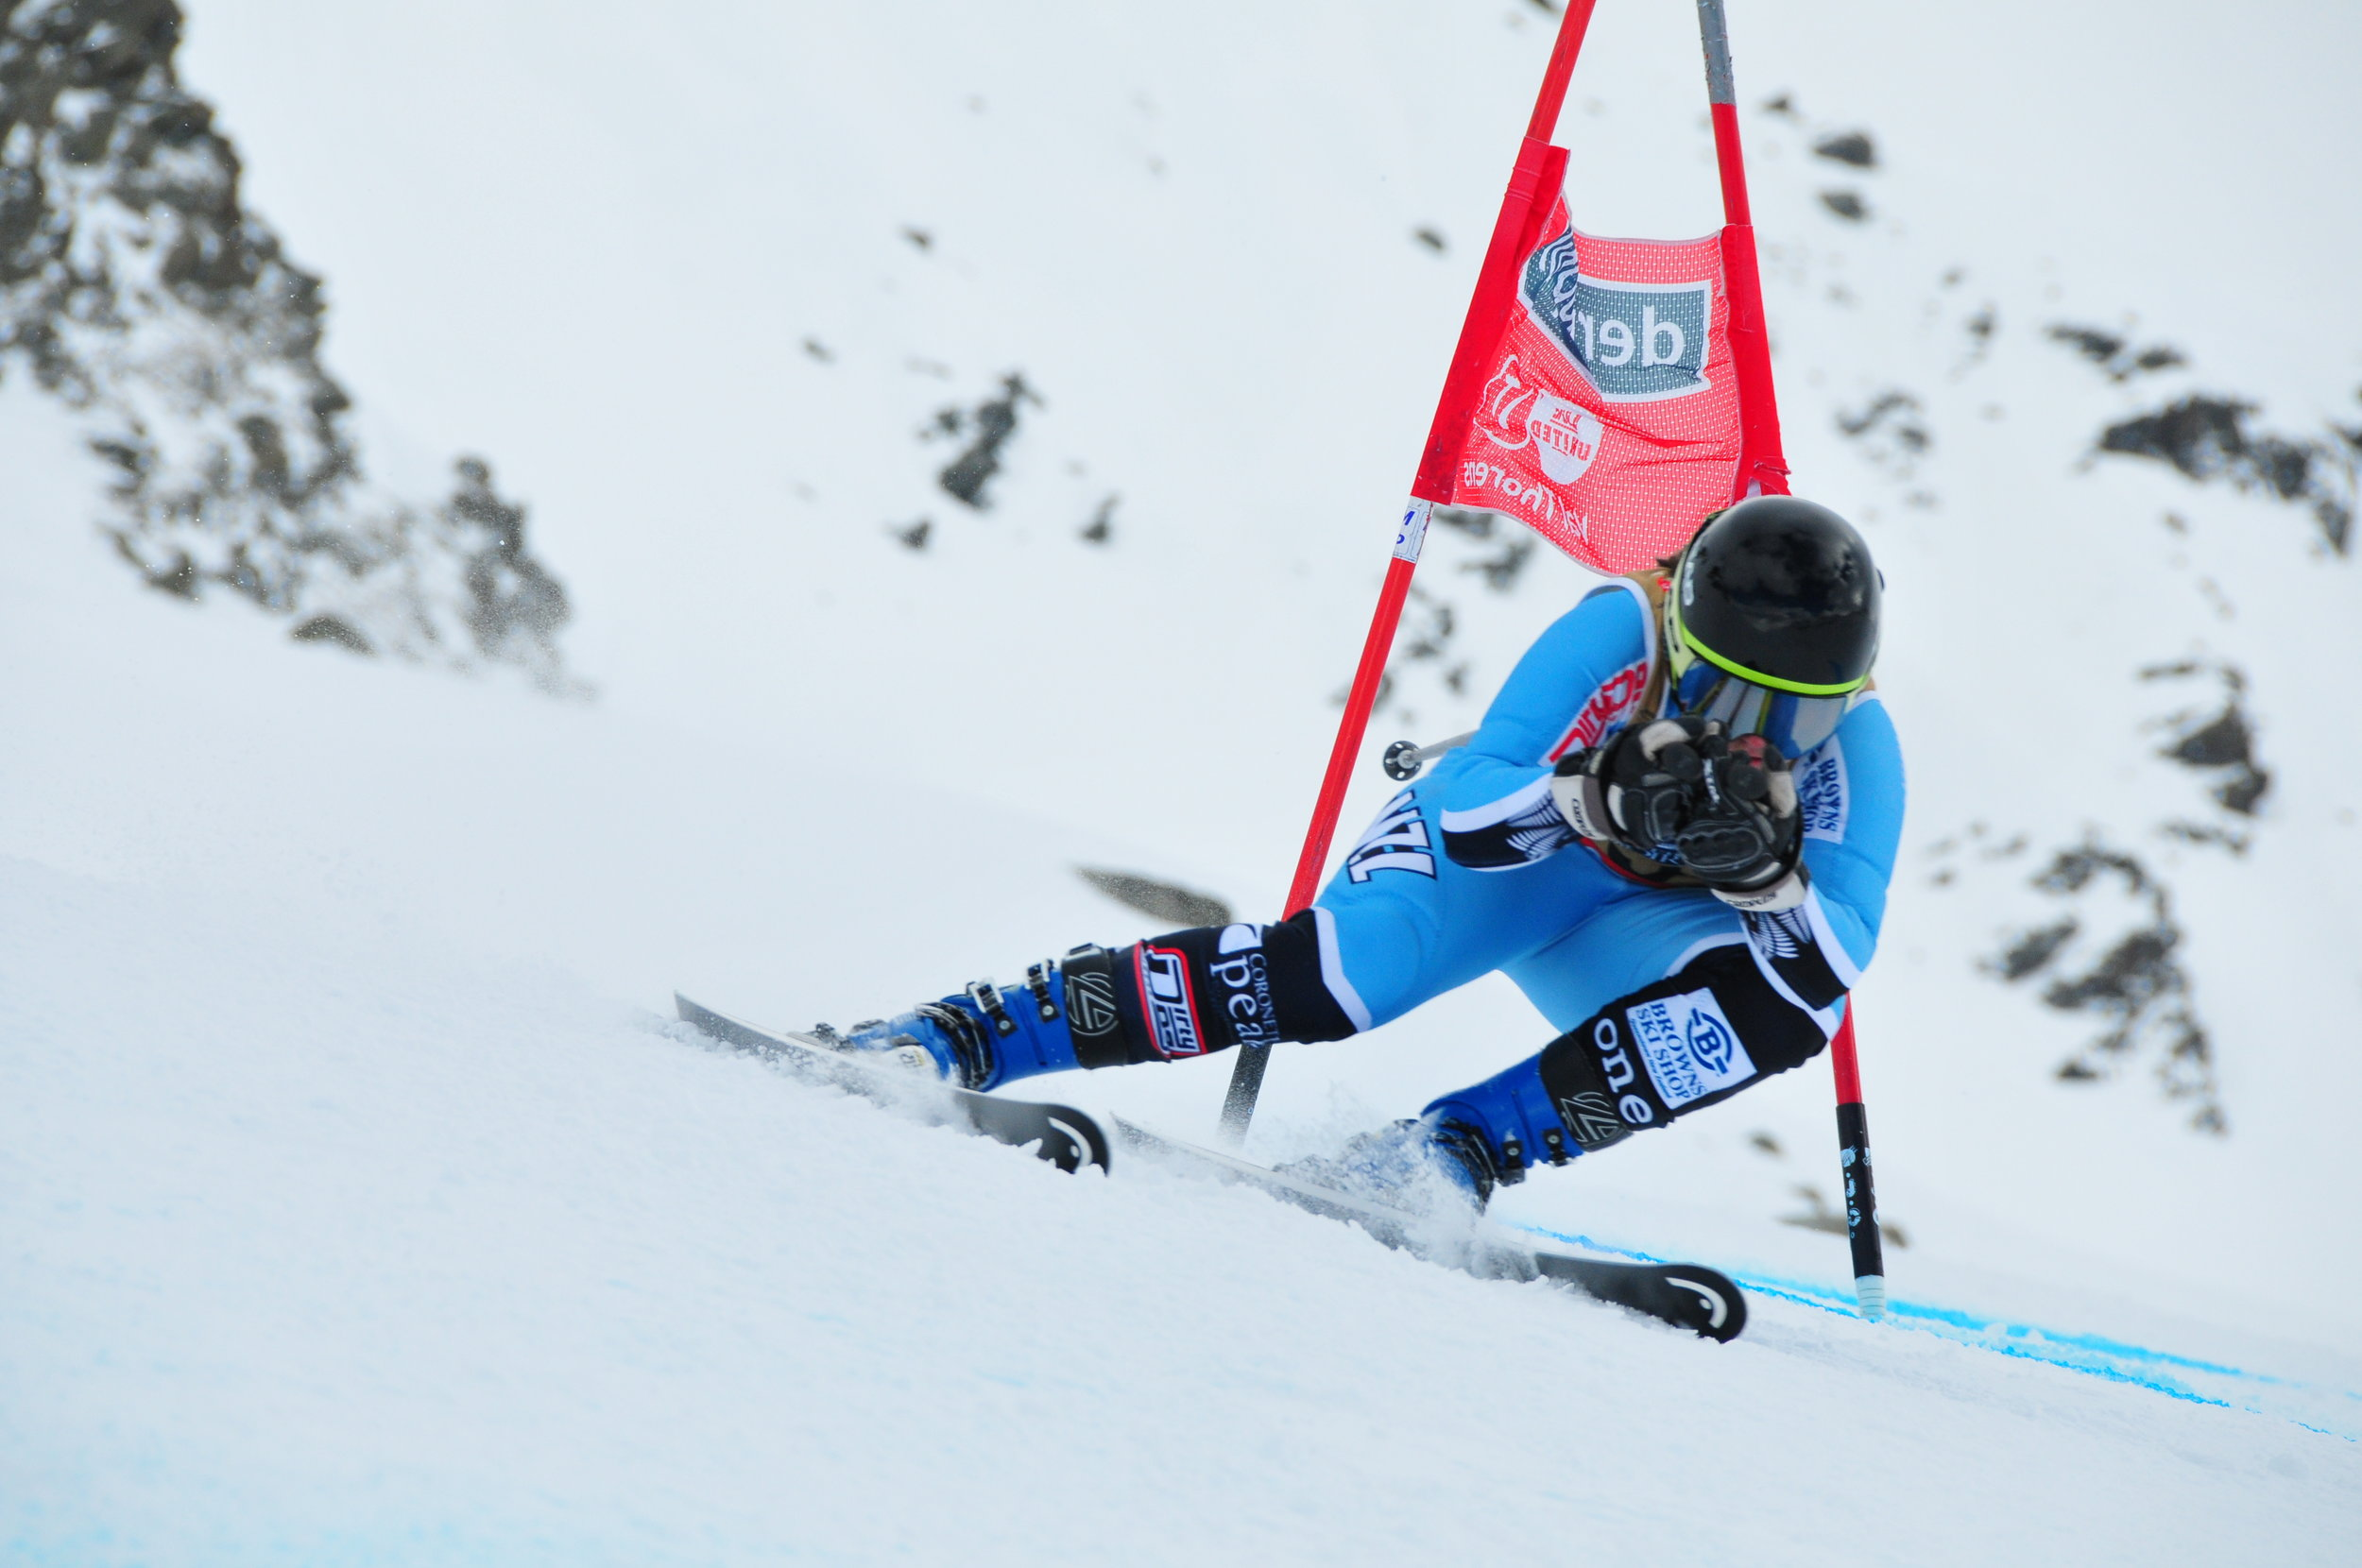 Super G: 4th overall, PB of 58.34 - 2016 Mt Hutt ANC race, New Zealand